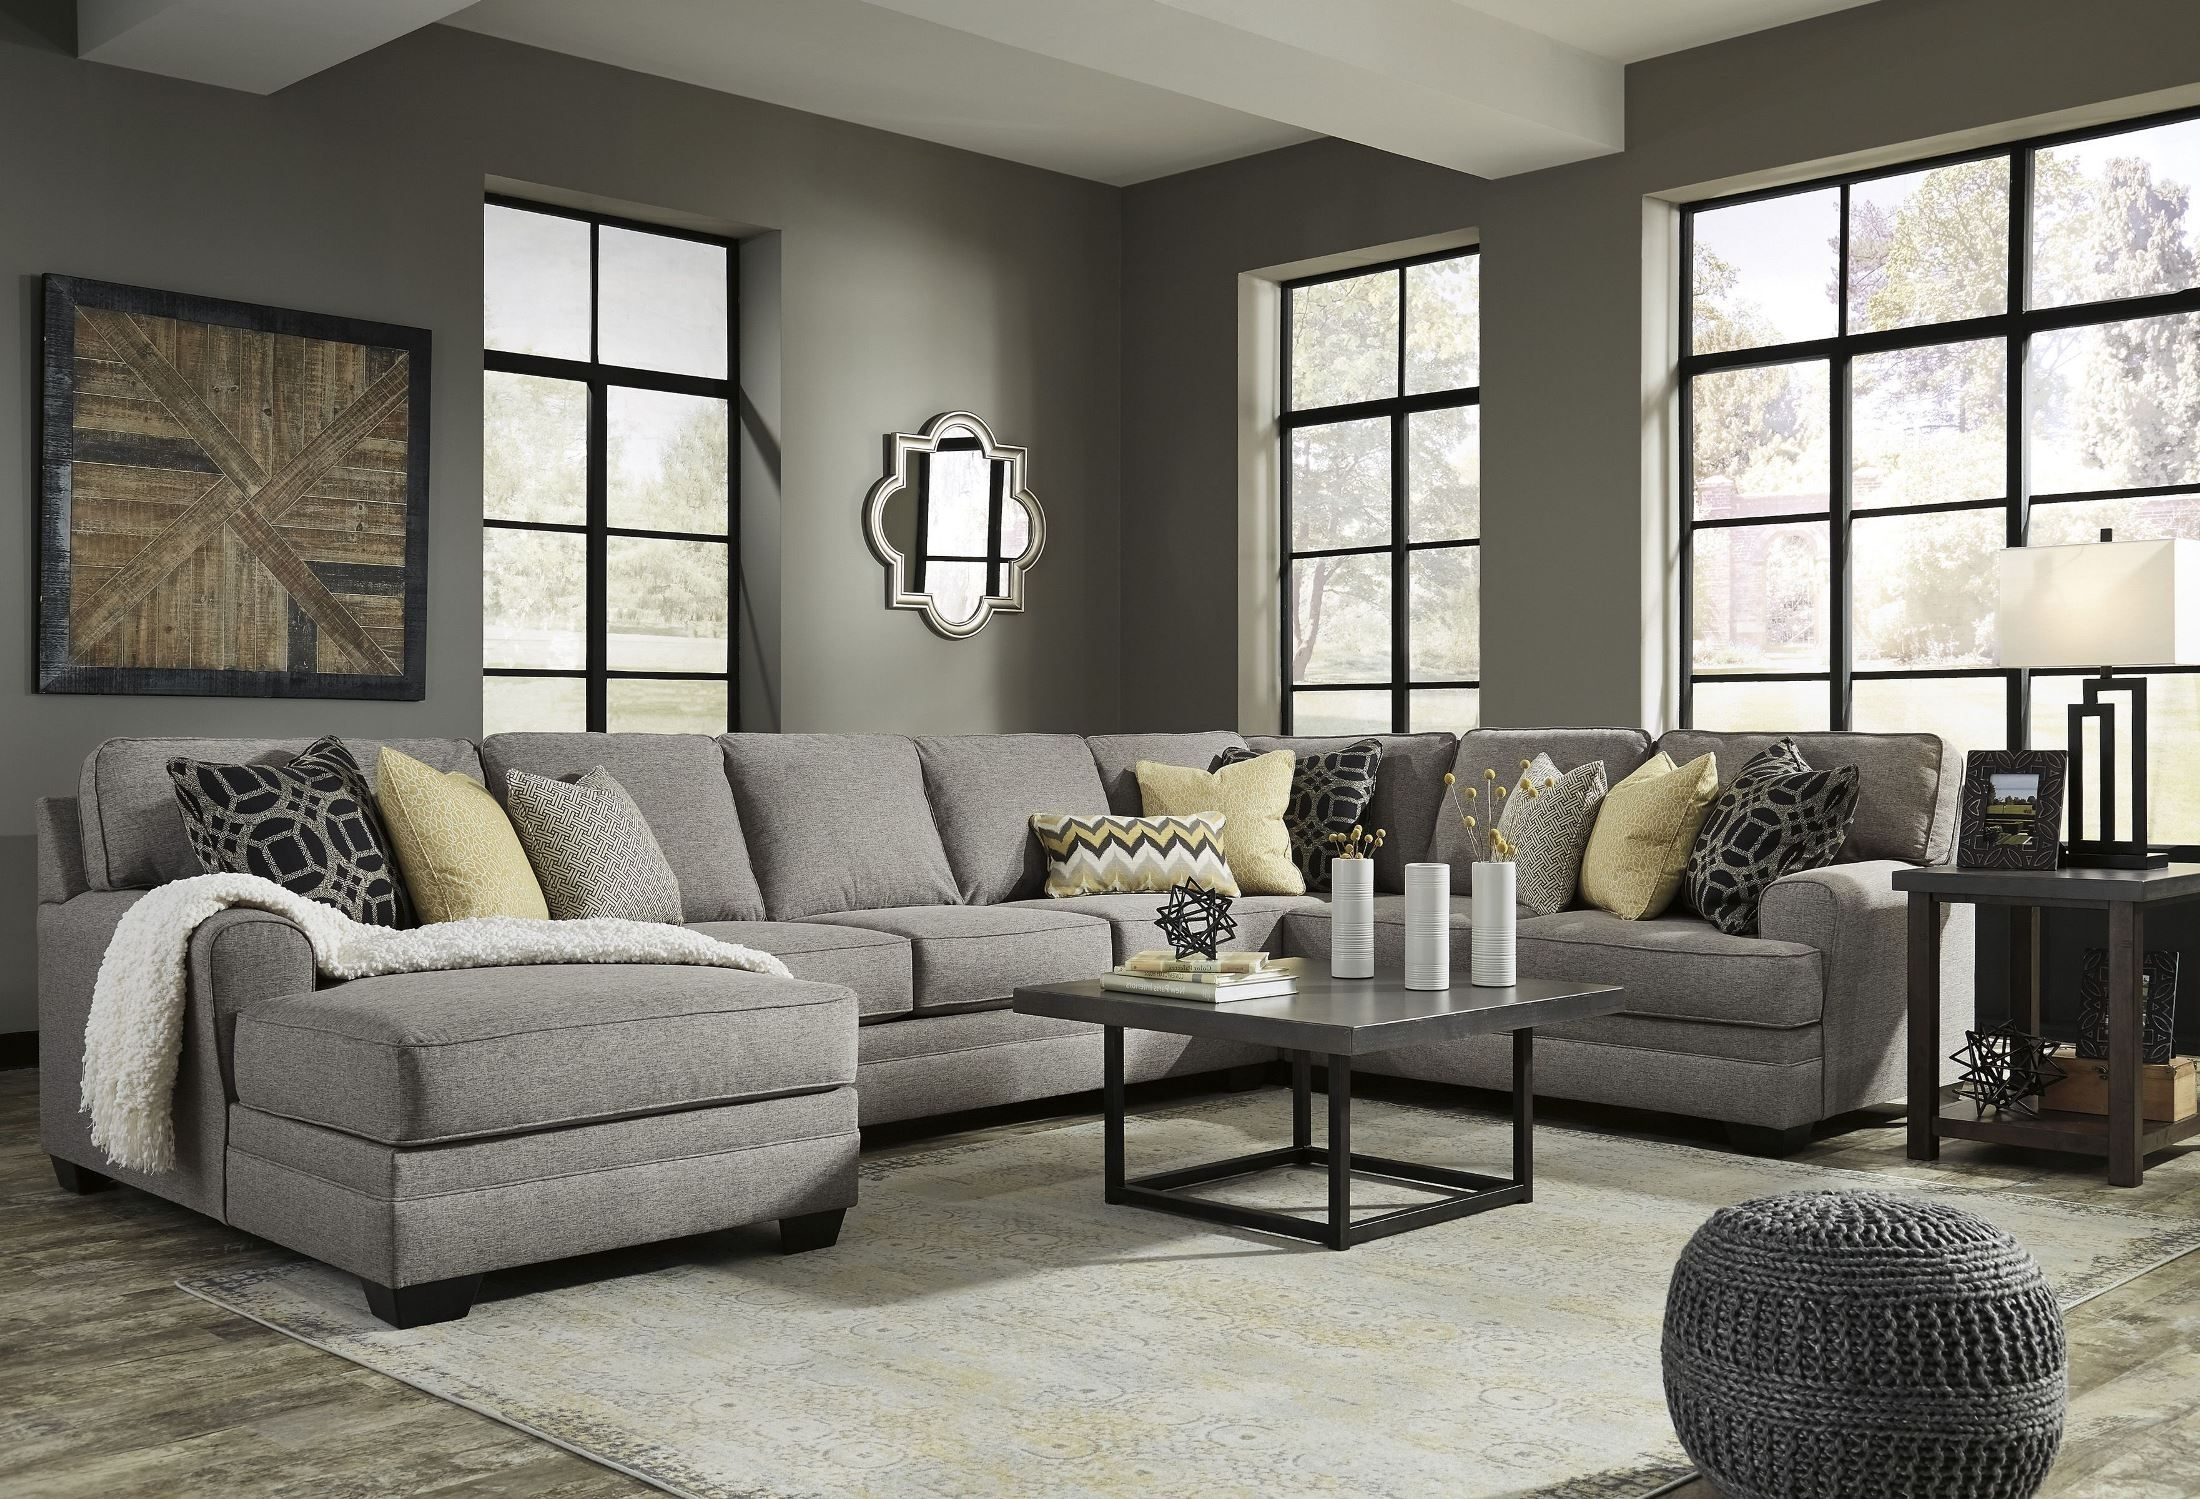 Large Chaise Sofas | Baci Living Room for Delano 2 Piece Sectionals With Raf Oversized Chaise (Image 23 of 30)